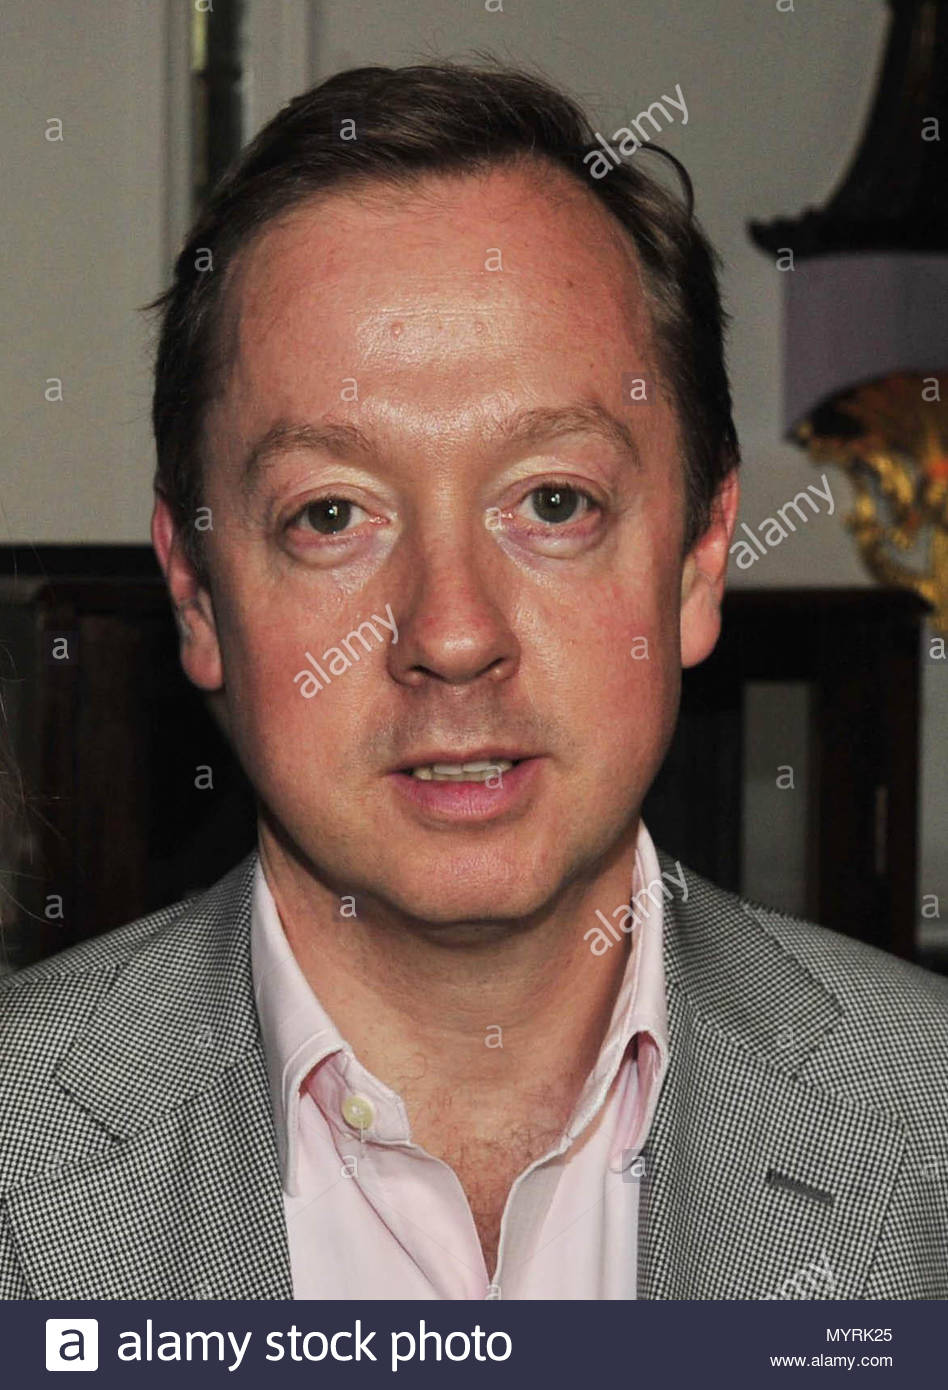 File photo dated 25/5 of Geordie Greig whose appointment as Daily Mail editor follows the announcement on Wednesday that Paul Dacre is to become chairman and editor in chief of Associated Newspapers. - Stock Image